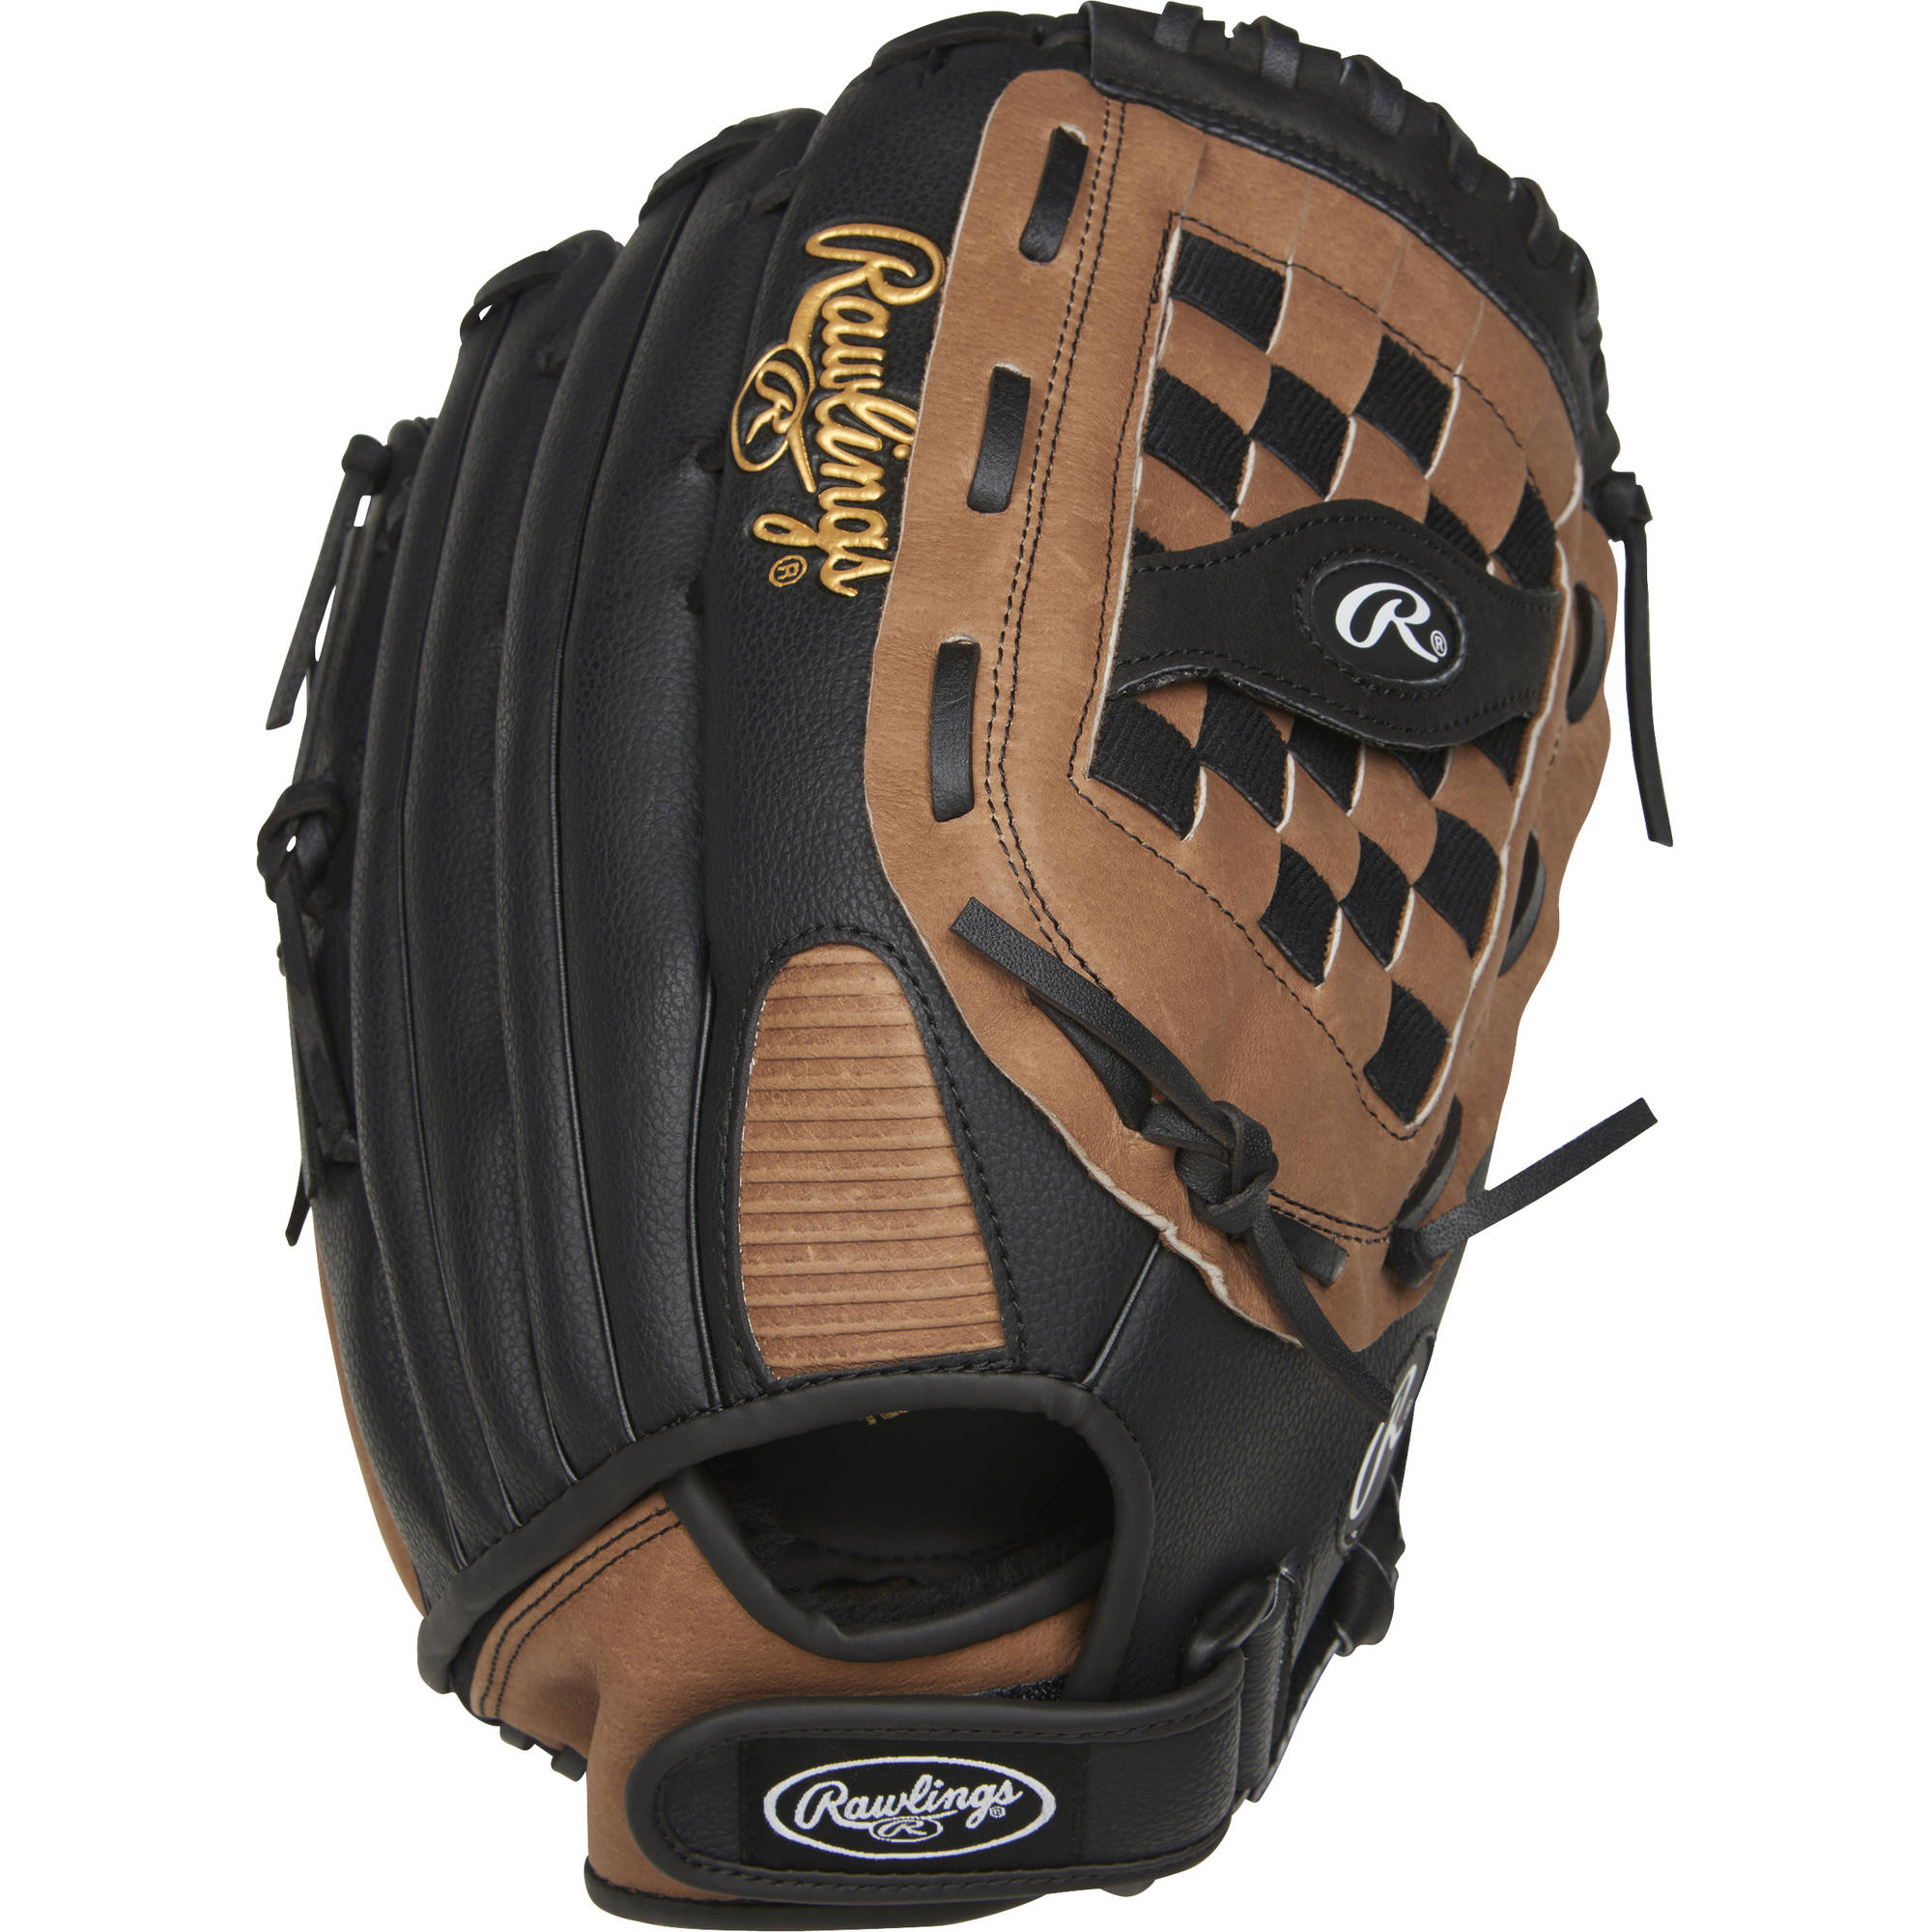 "Rawlings 14"" Slowpitch Softball Glove, Left Hand Throw"